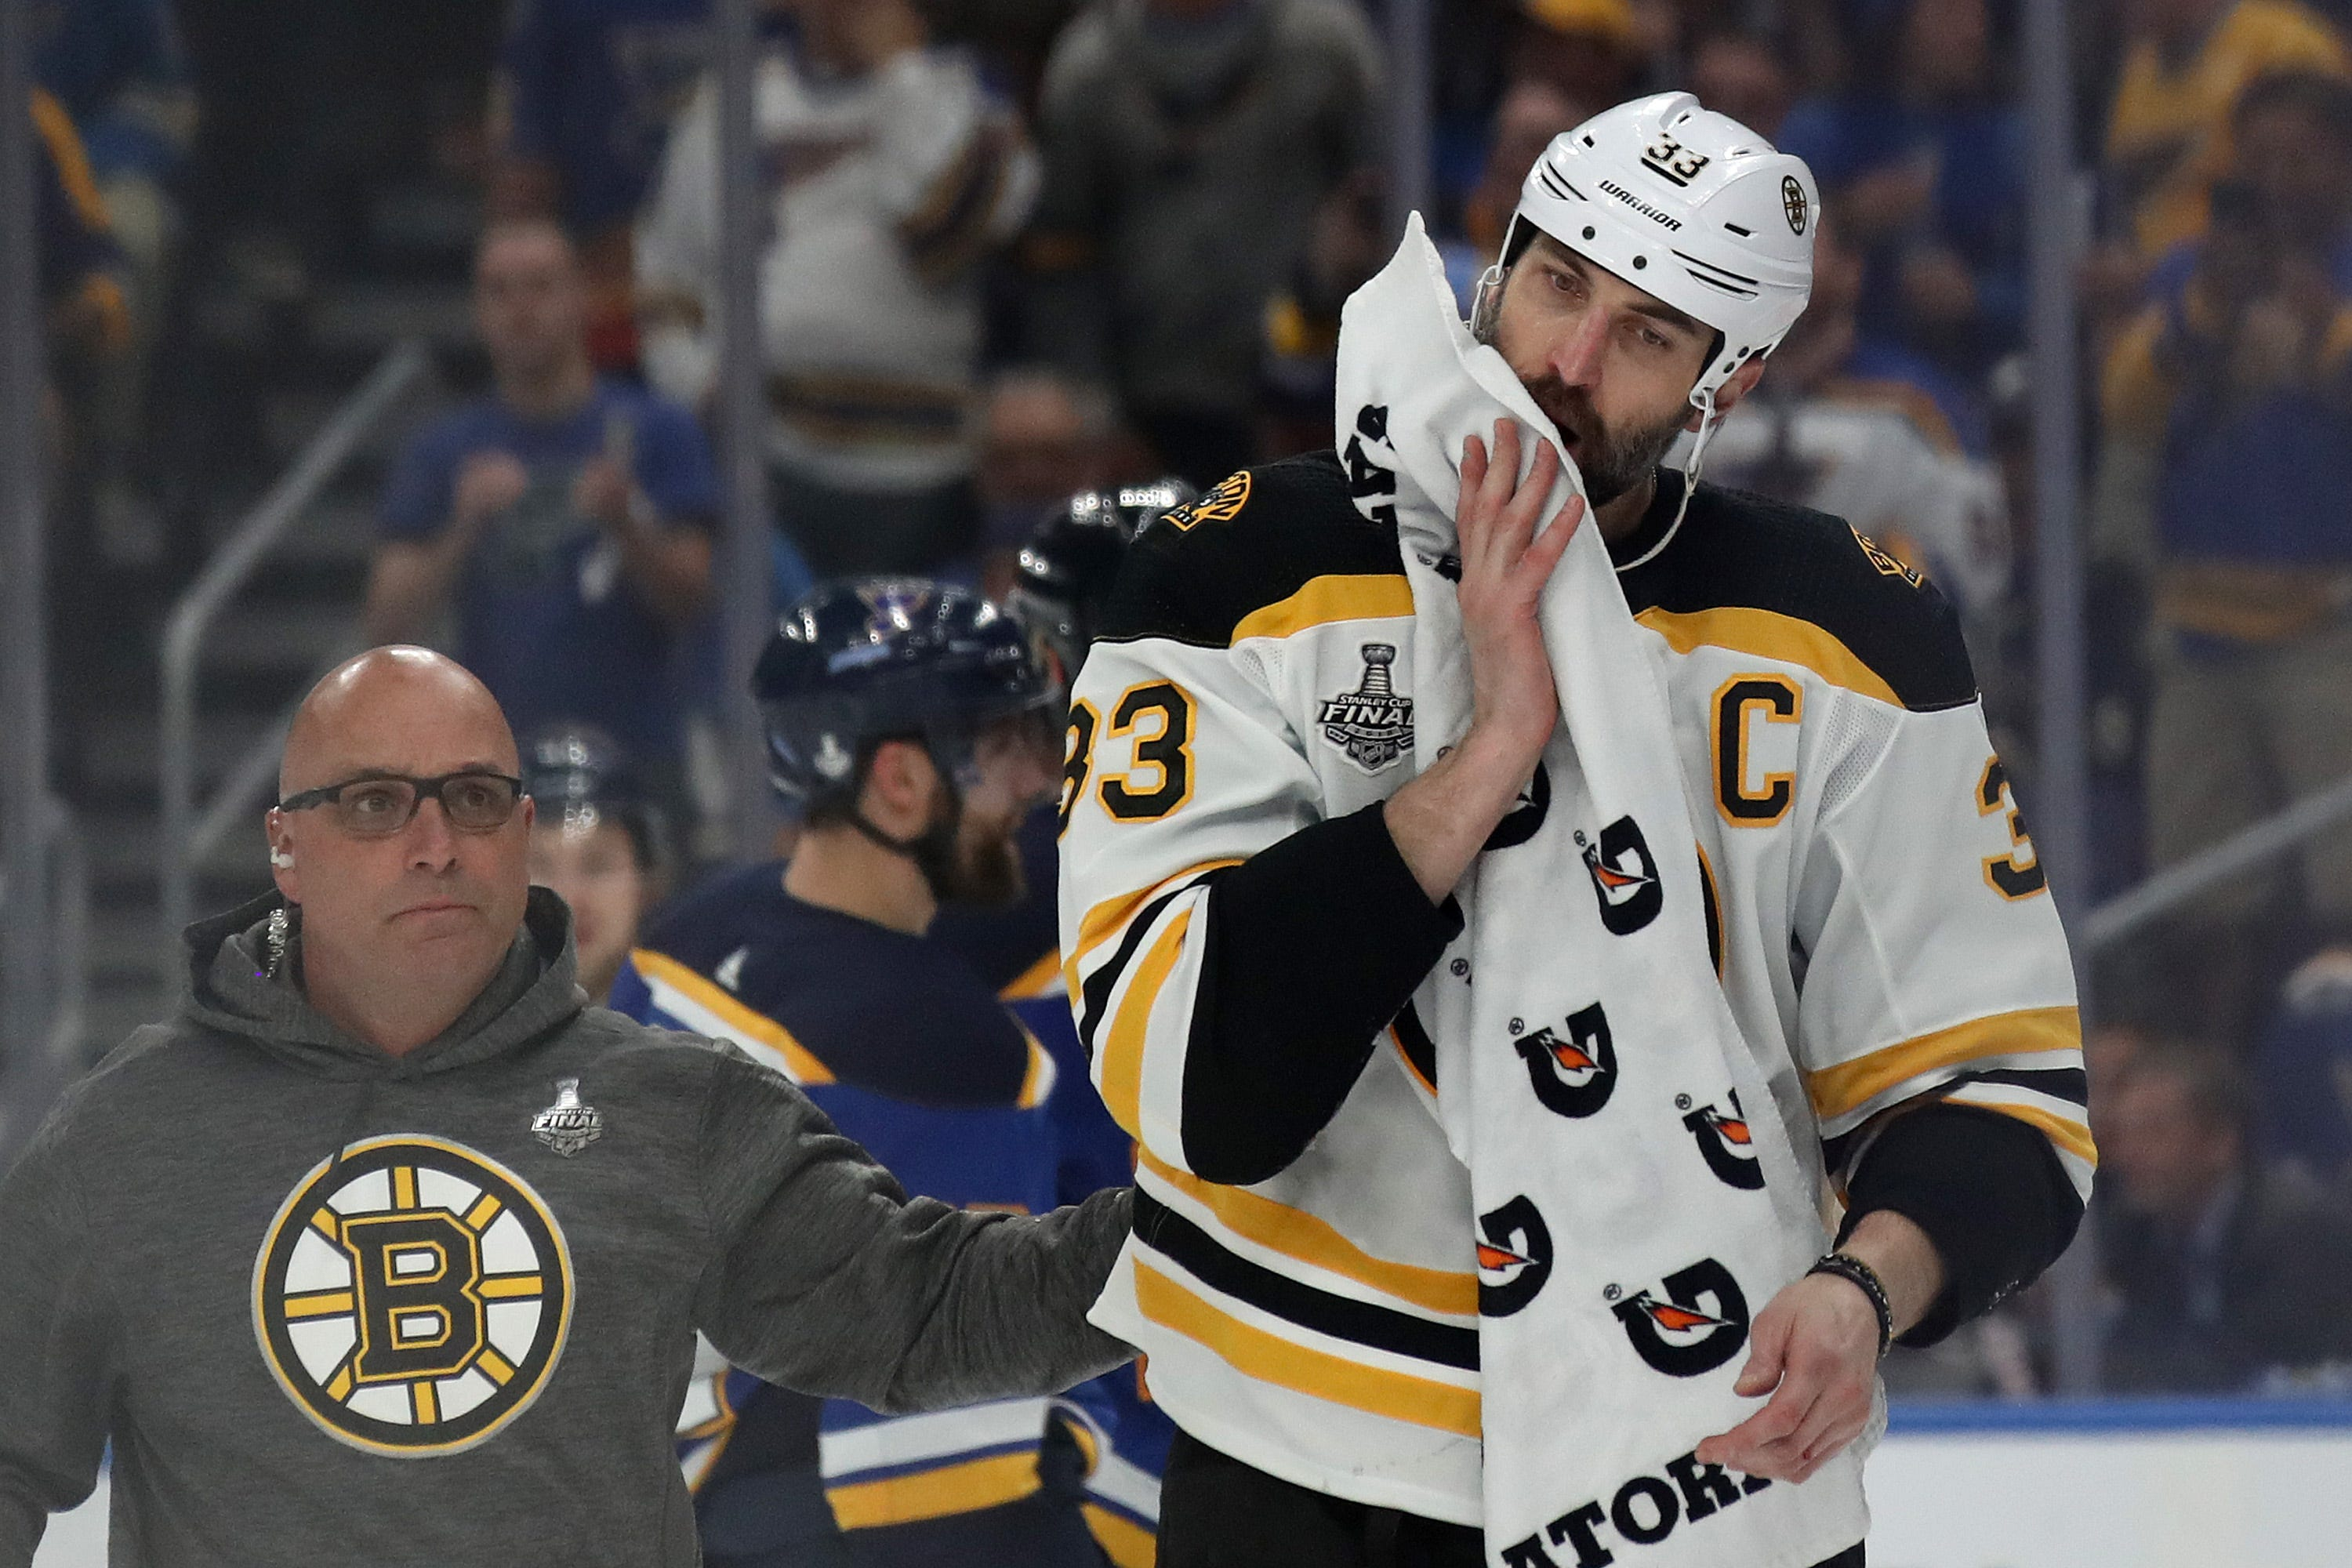 Bruins' Zdeno Chara joins tradition of playing through pain, starts Game 5 with jaw injury